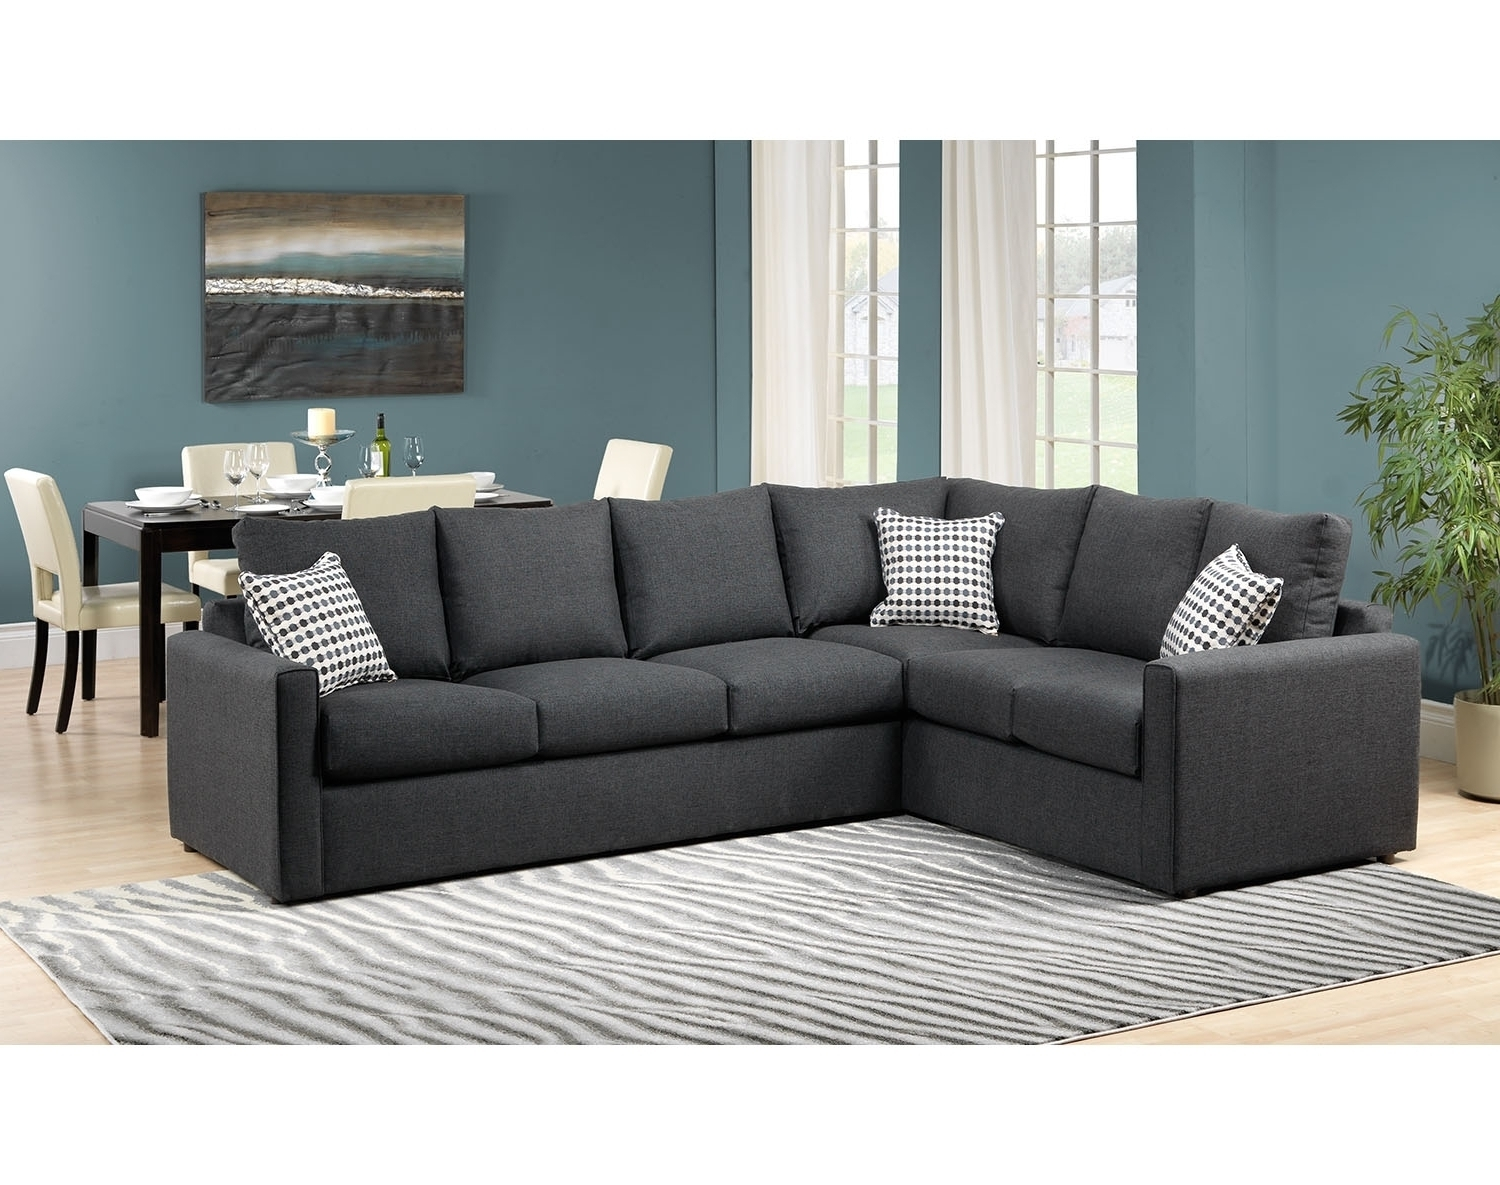 2019 Leons Sectional Sofas In Sectional Sofa Bed Leons • Sofa Bed (View 1 of 20)